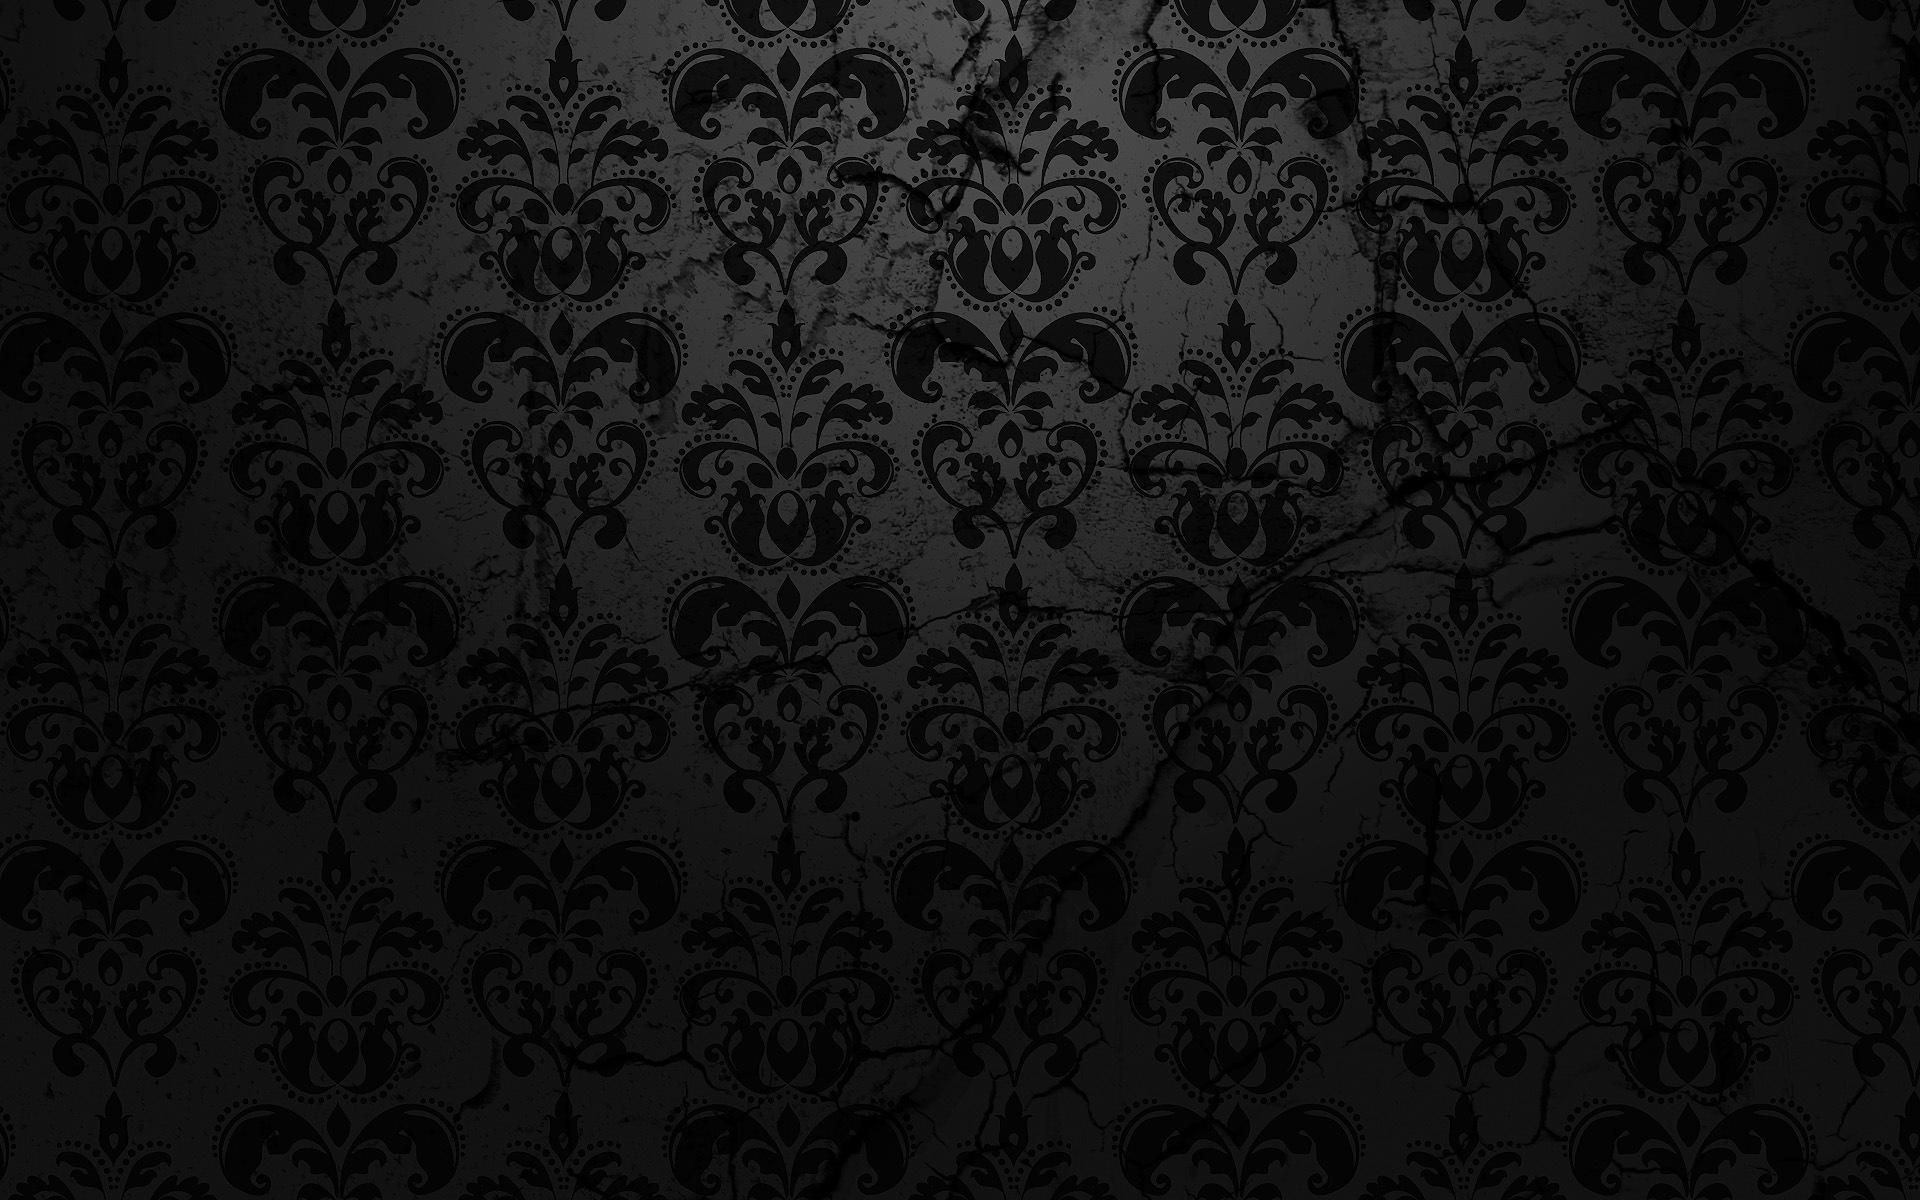 textured wallpaper 1920x1200